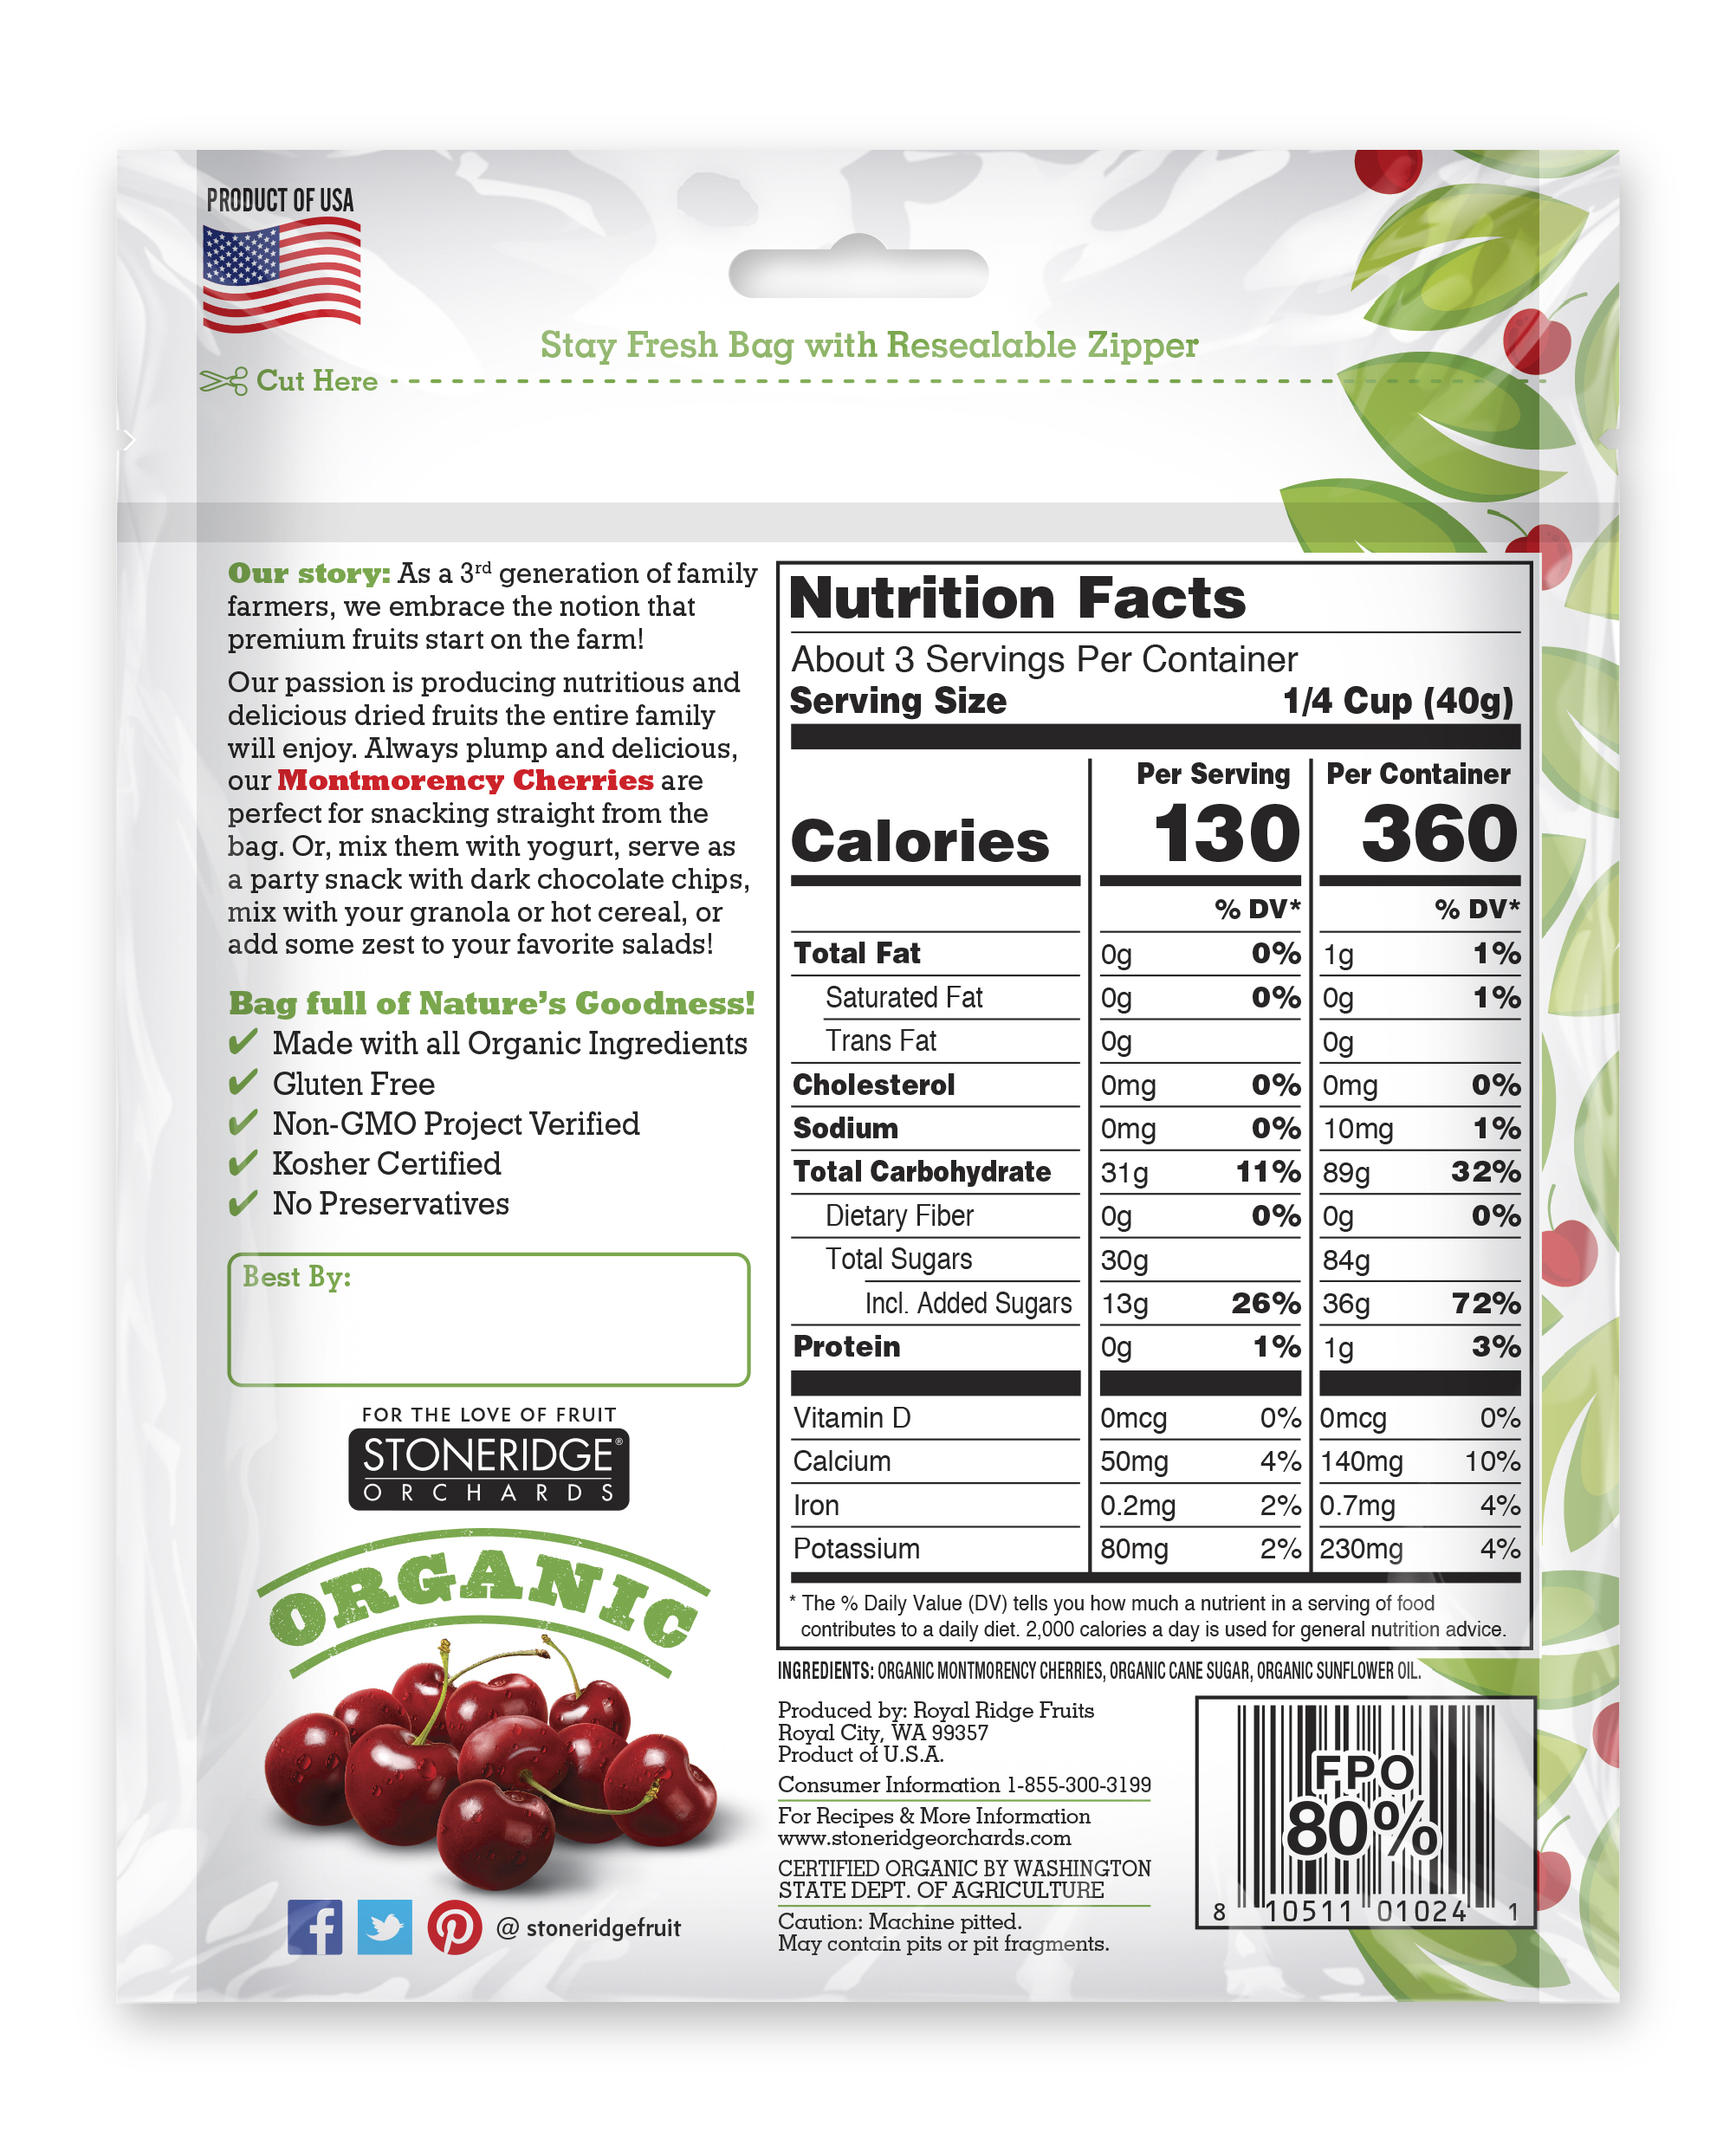 ORGANIC MONTMORENCY CHERRIES | The Natural Products Brands